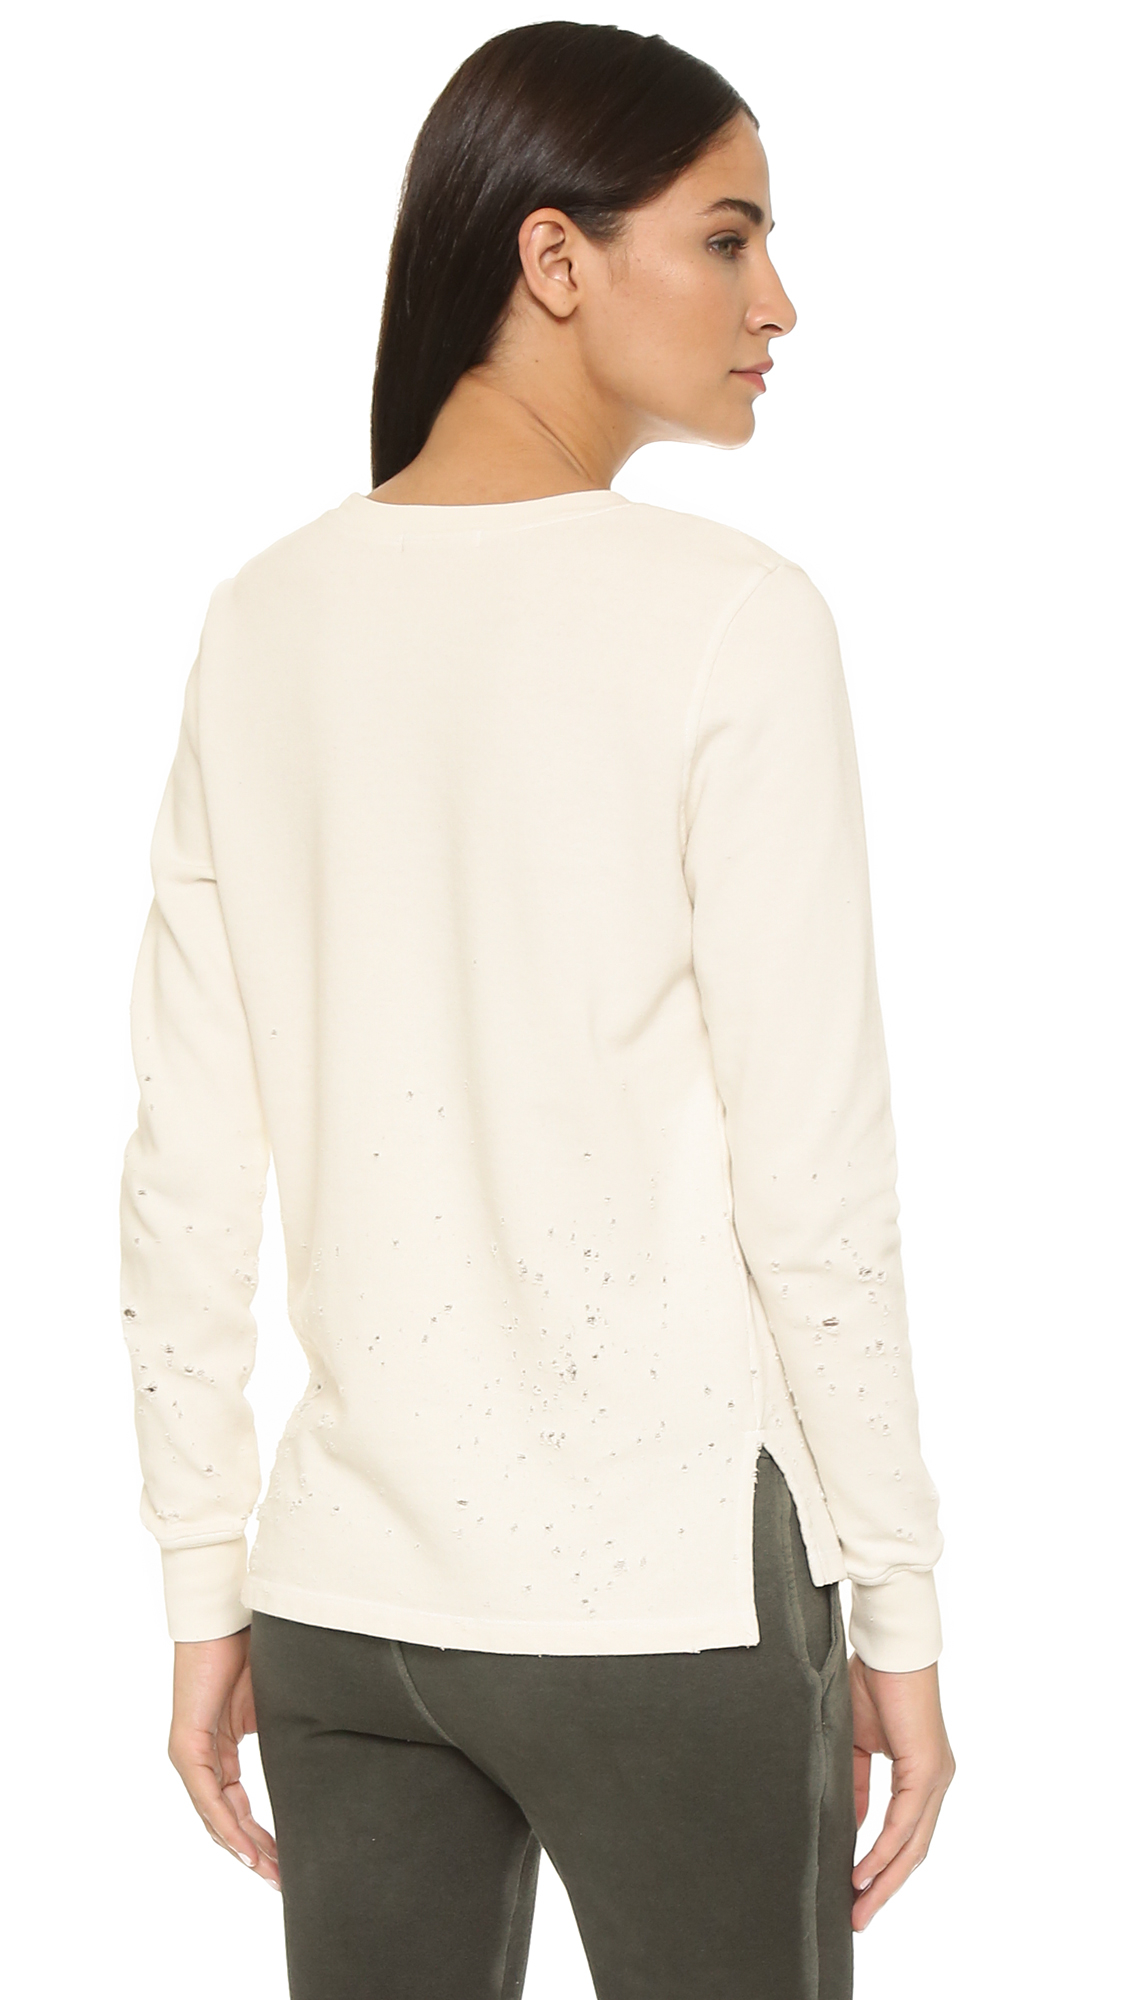 Cotton citizen The Malibu Crew Sweatshirt  Distressed Bone in